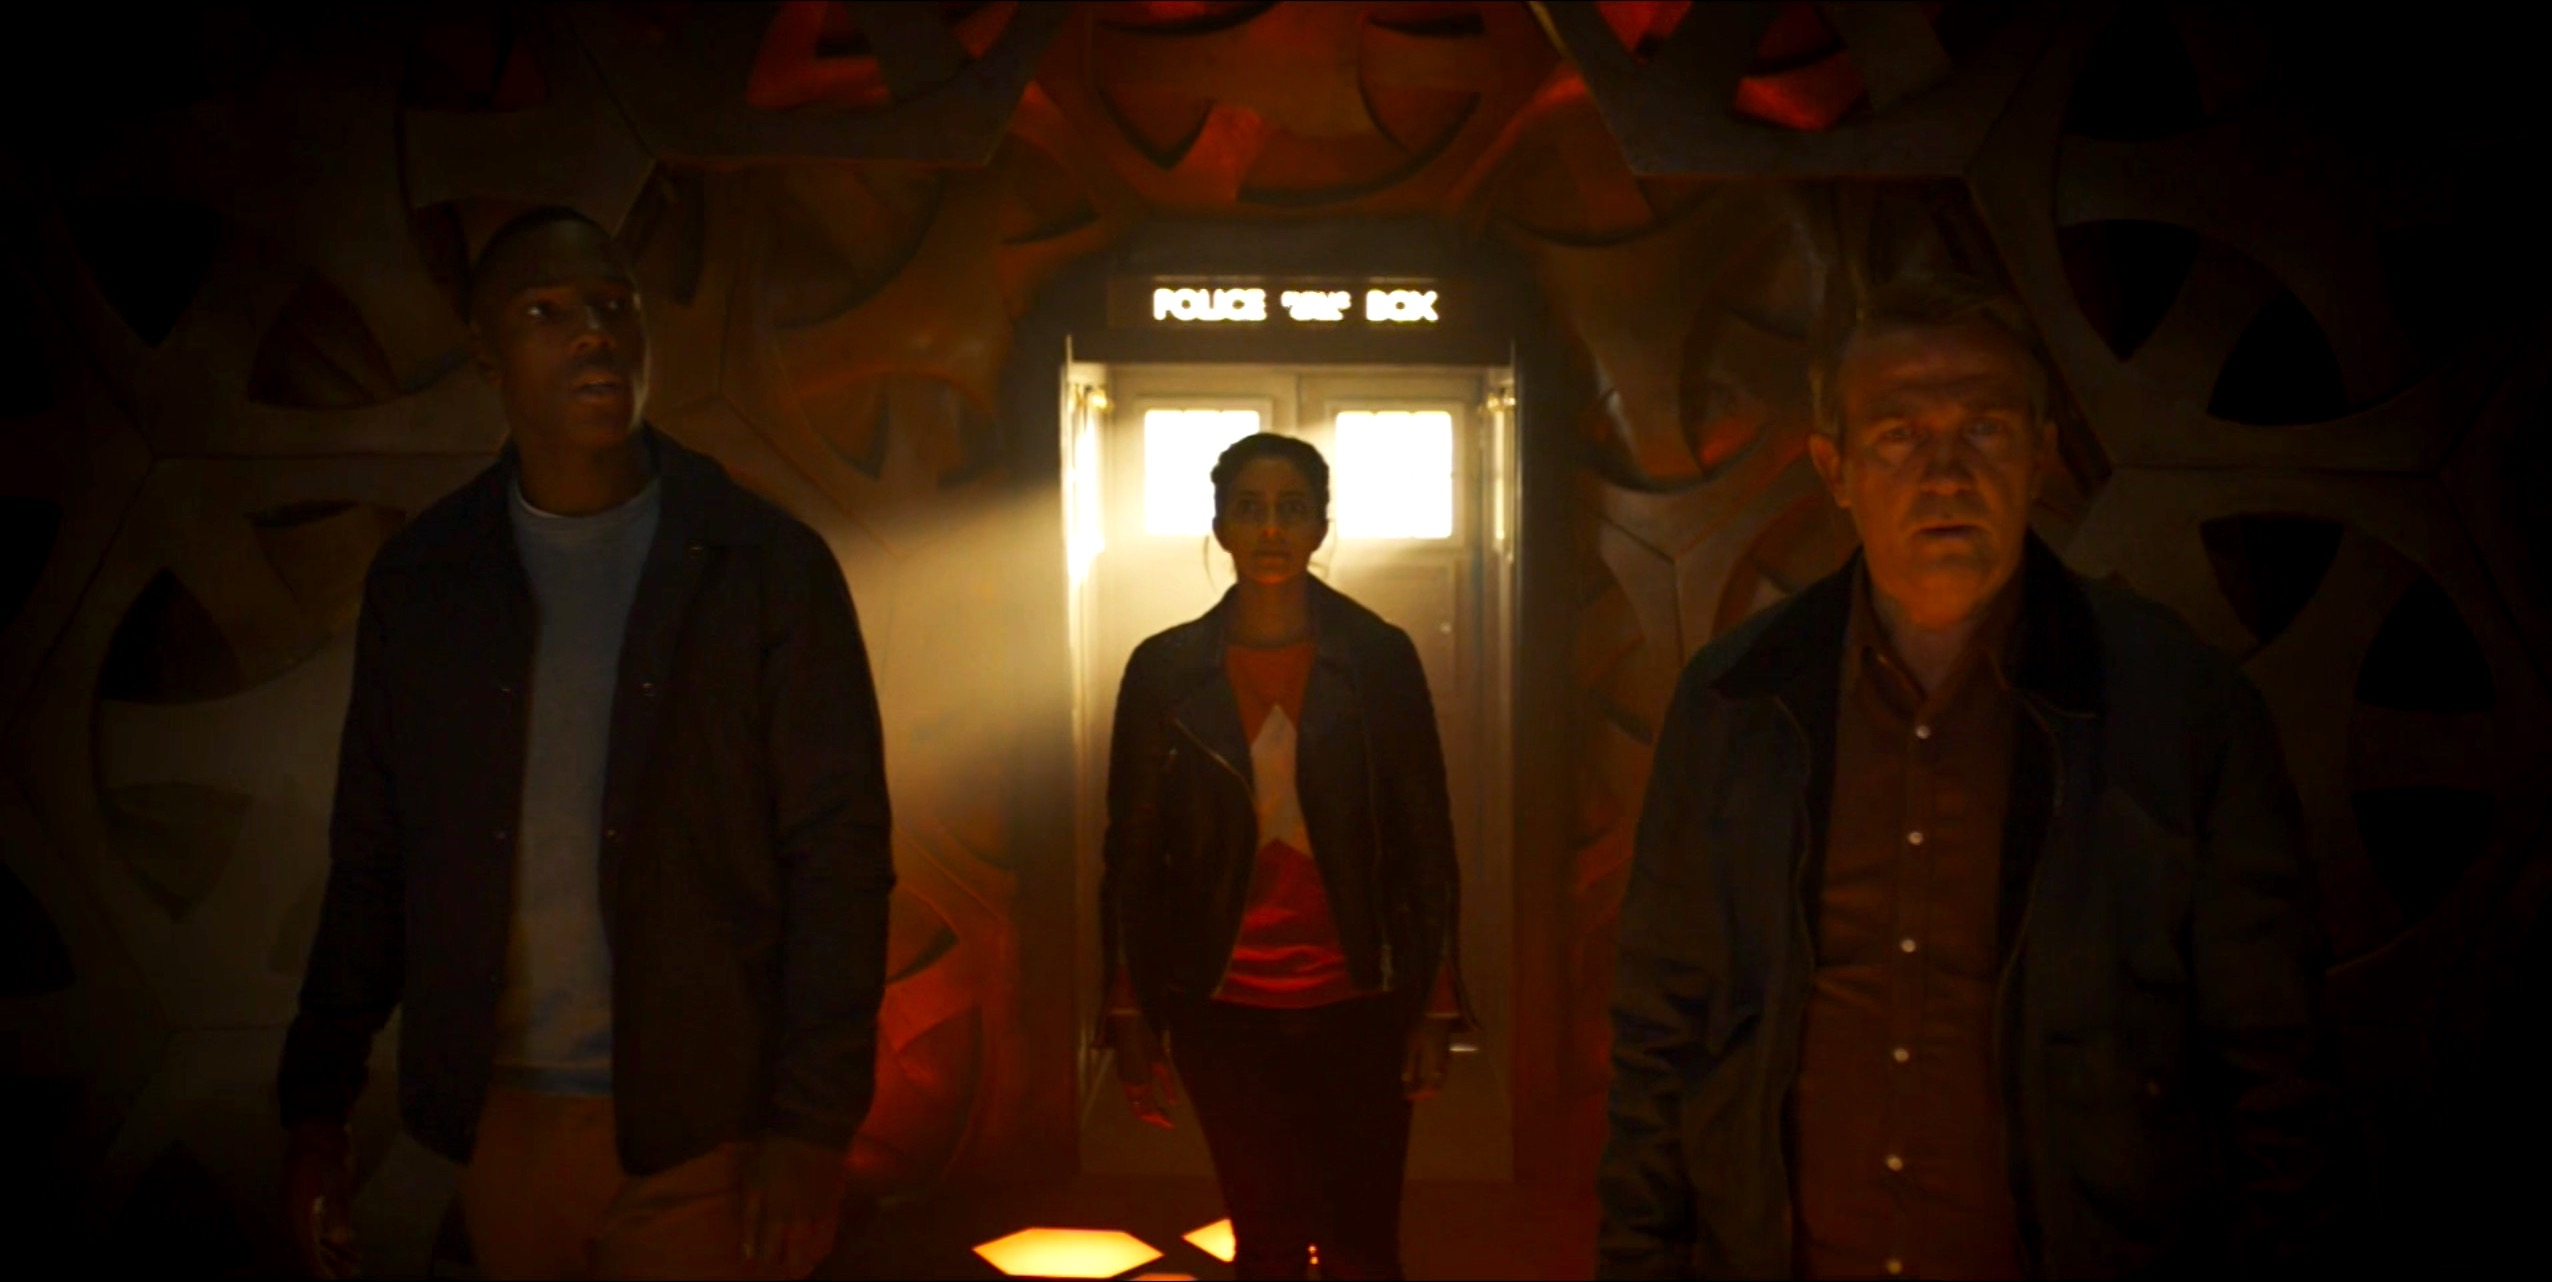 Tosin Cole, Mandip Gill, and Bradley Walsh in The Ghost Monument